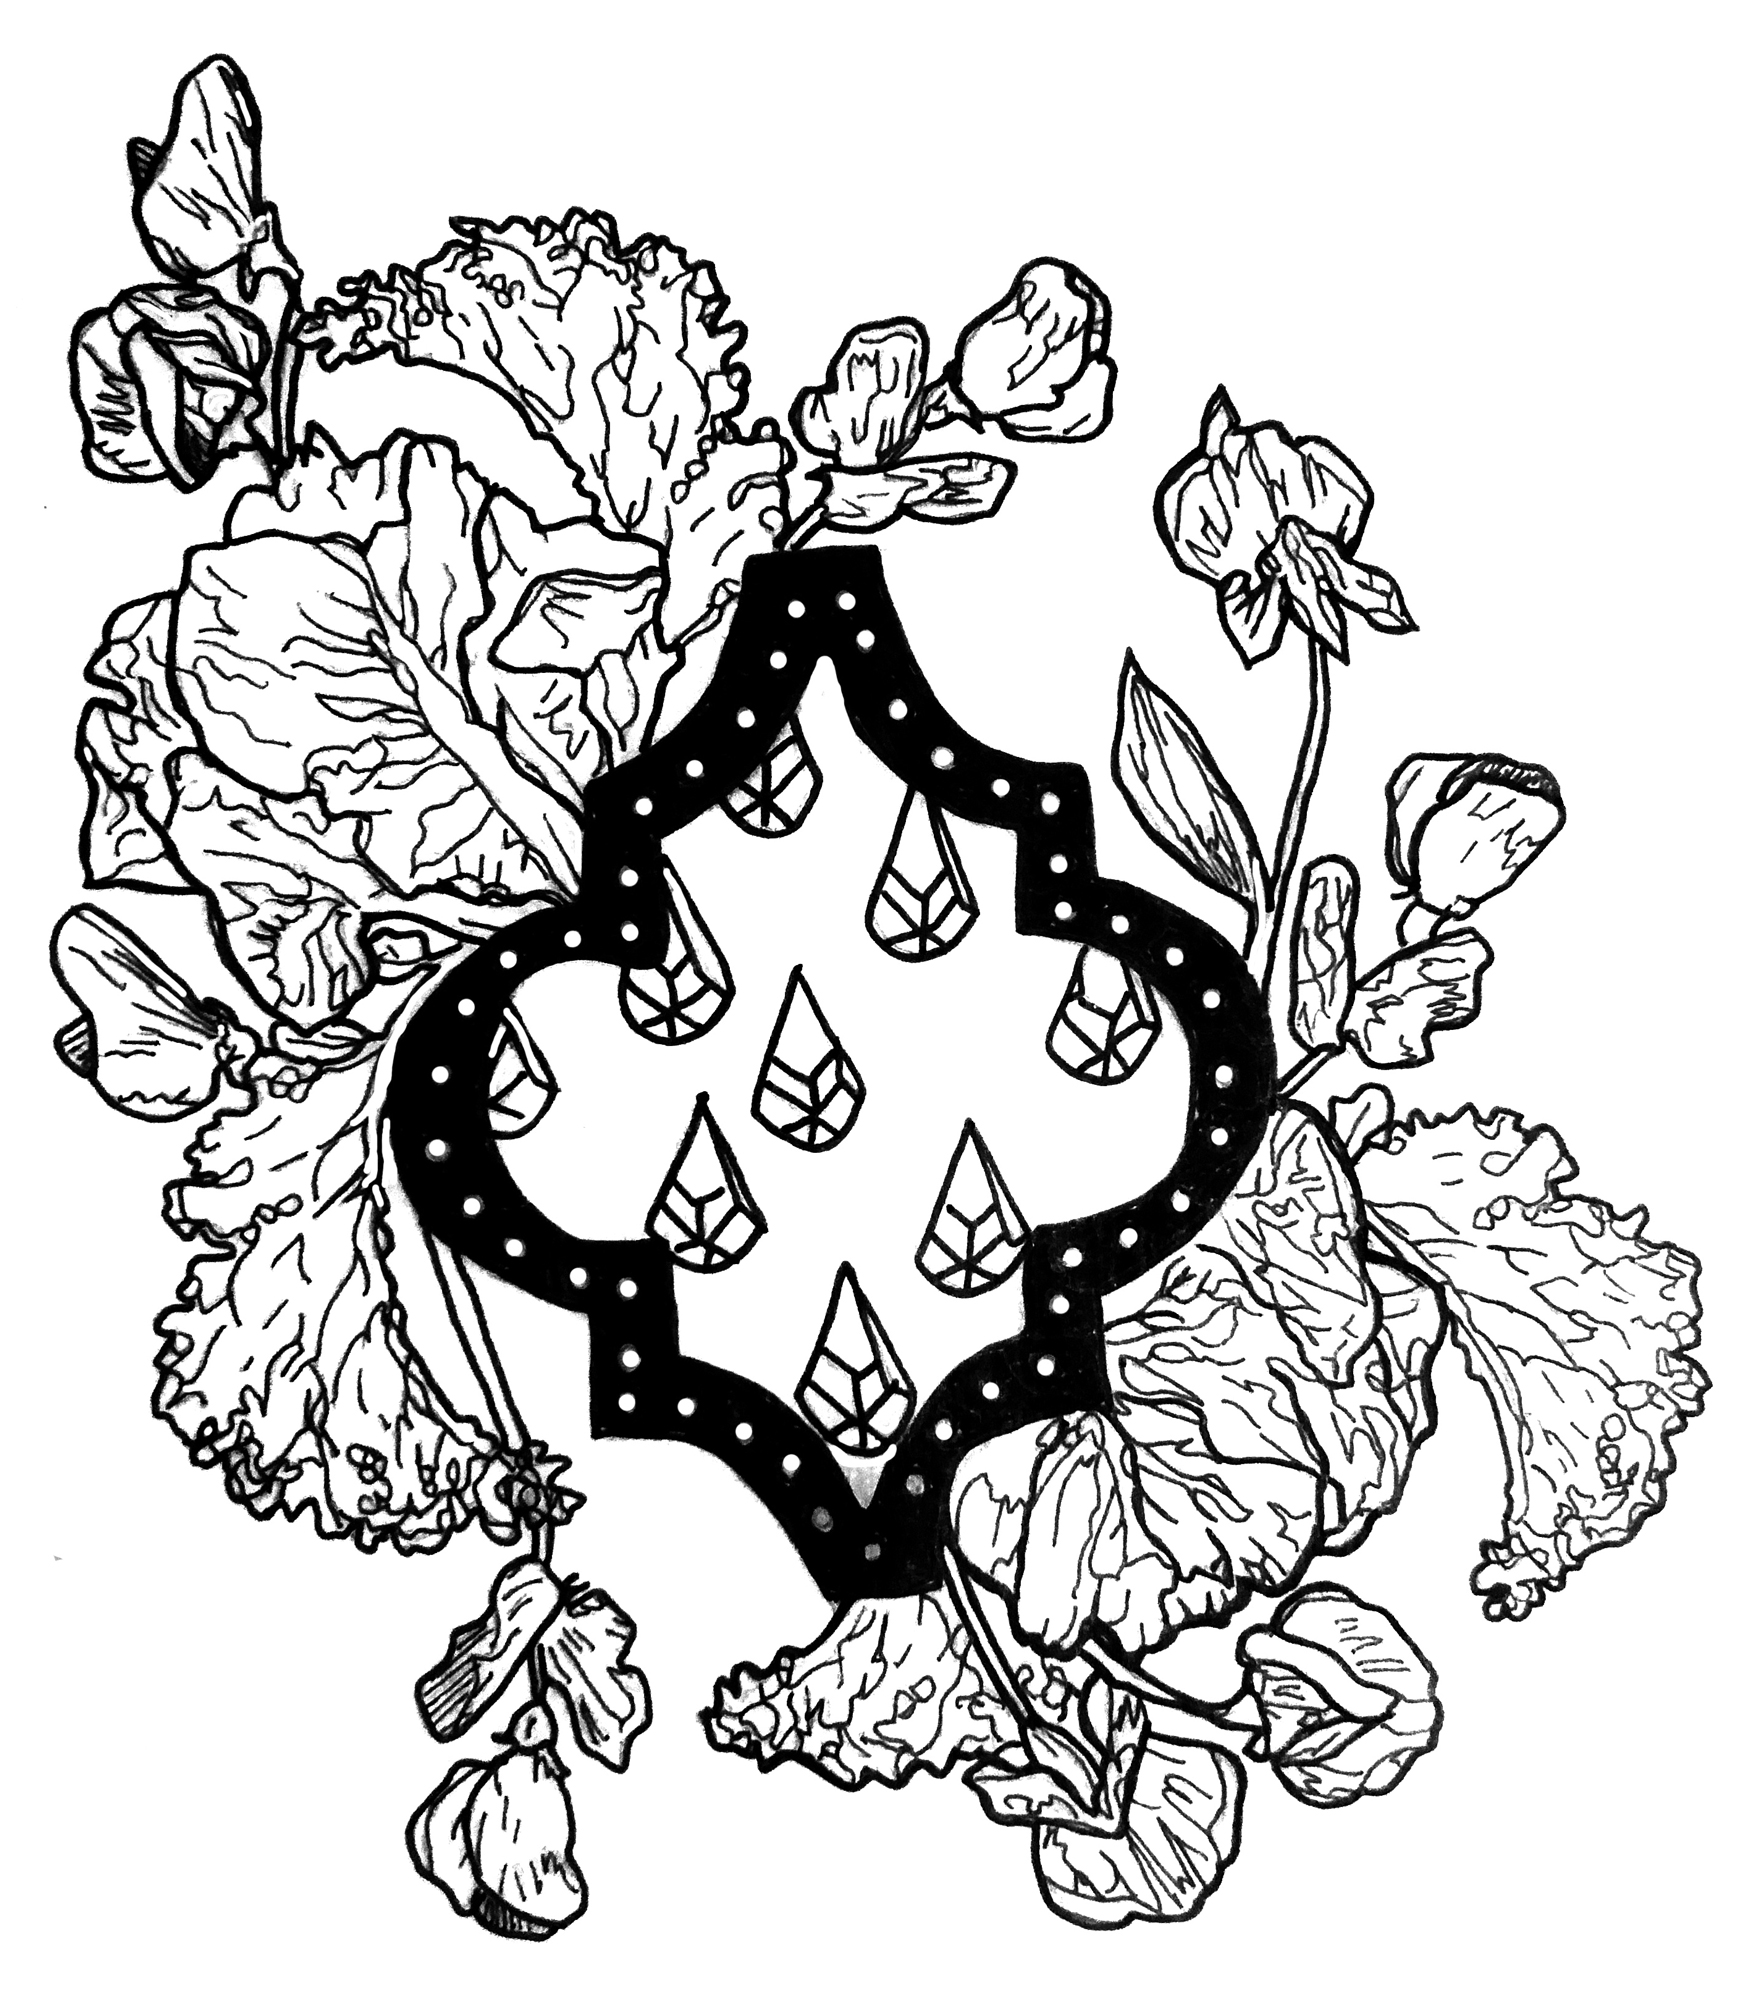 A black and white illustration of leaves growing around a black frame. The frame is black and has white dots. Inside the frame are individual leaves spaced apart. Outside of the frame there are overgrown leaves all around it. Illustration by Rachel Speck.